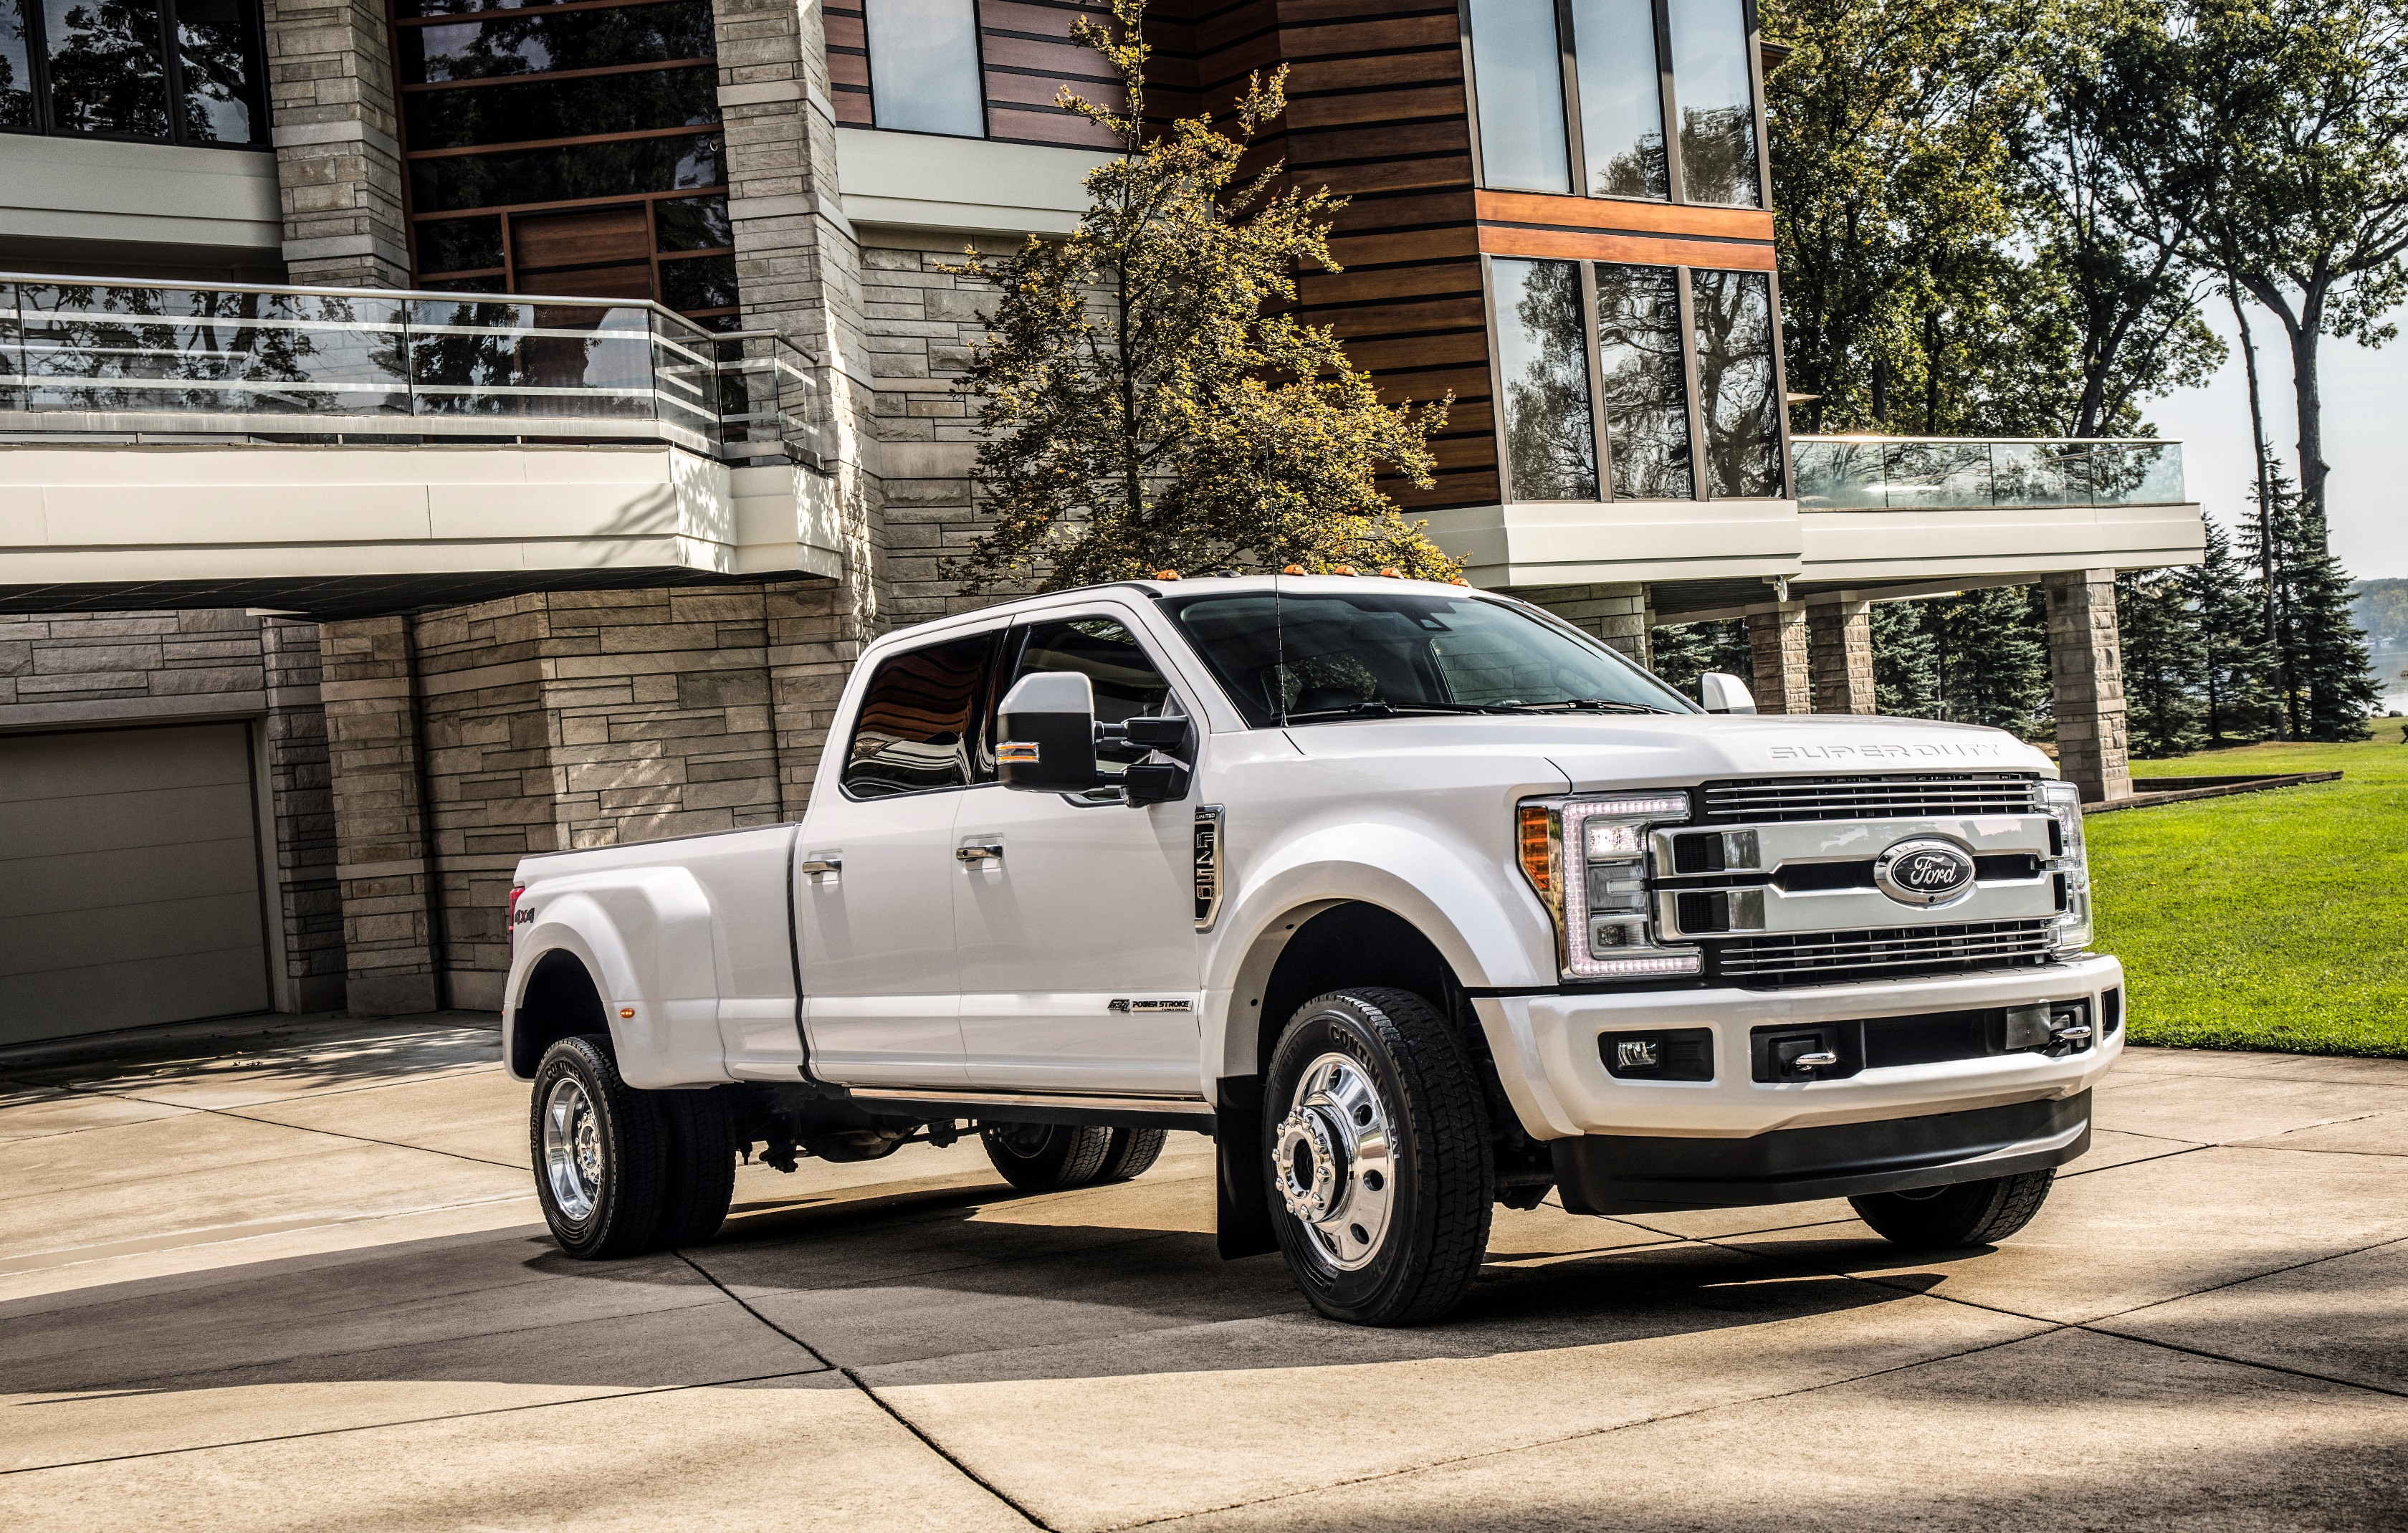 America's Most Luxurious Pickup Truck Is The $100,000 2018 Ford F-450 Limited - autoevolution